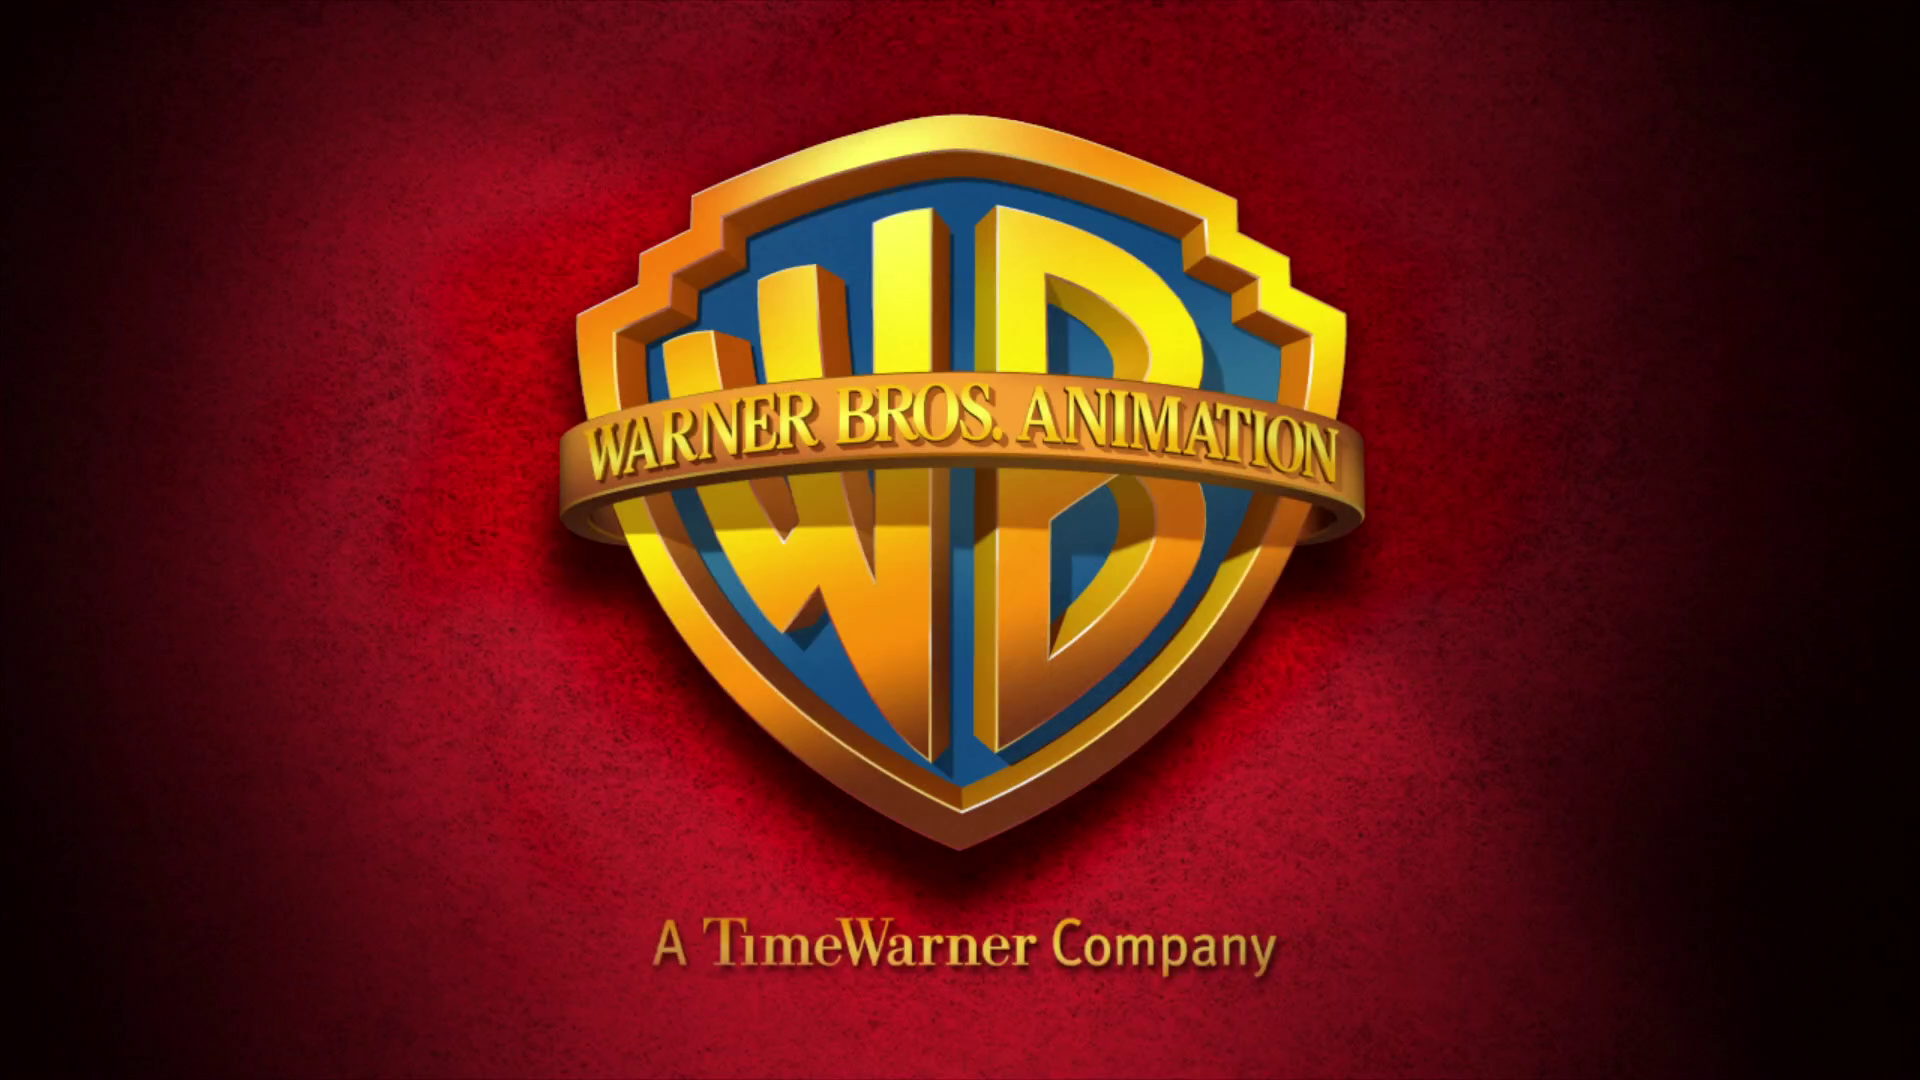 Warner Brothers Animation